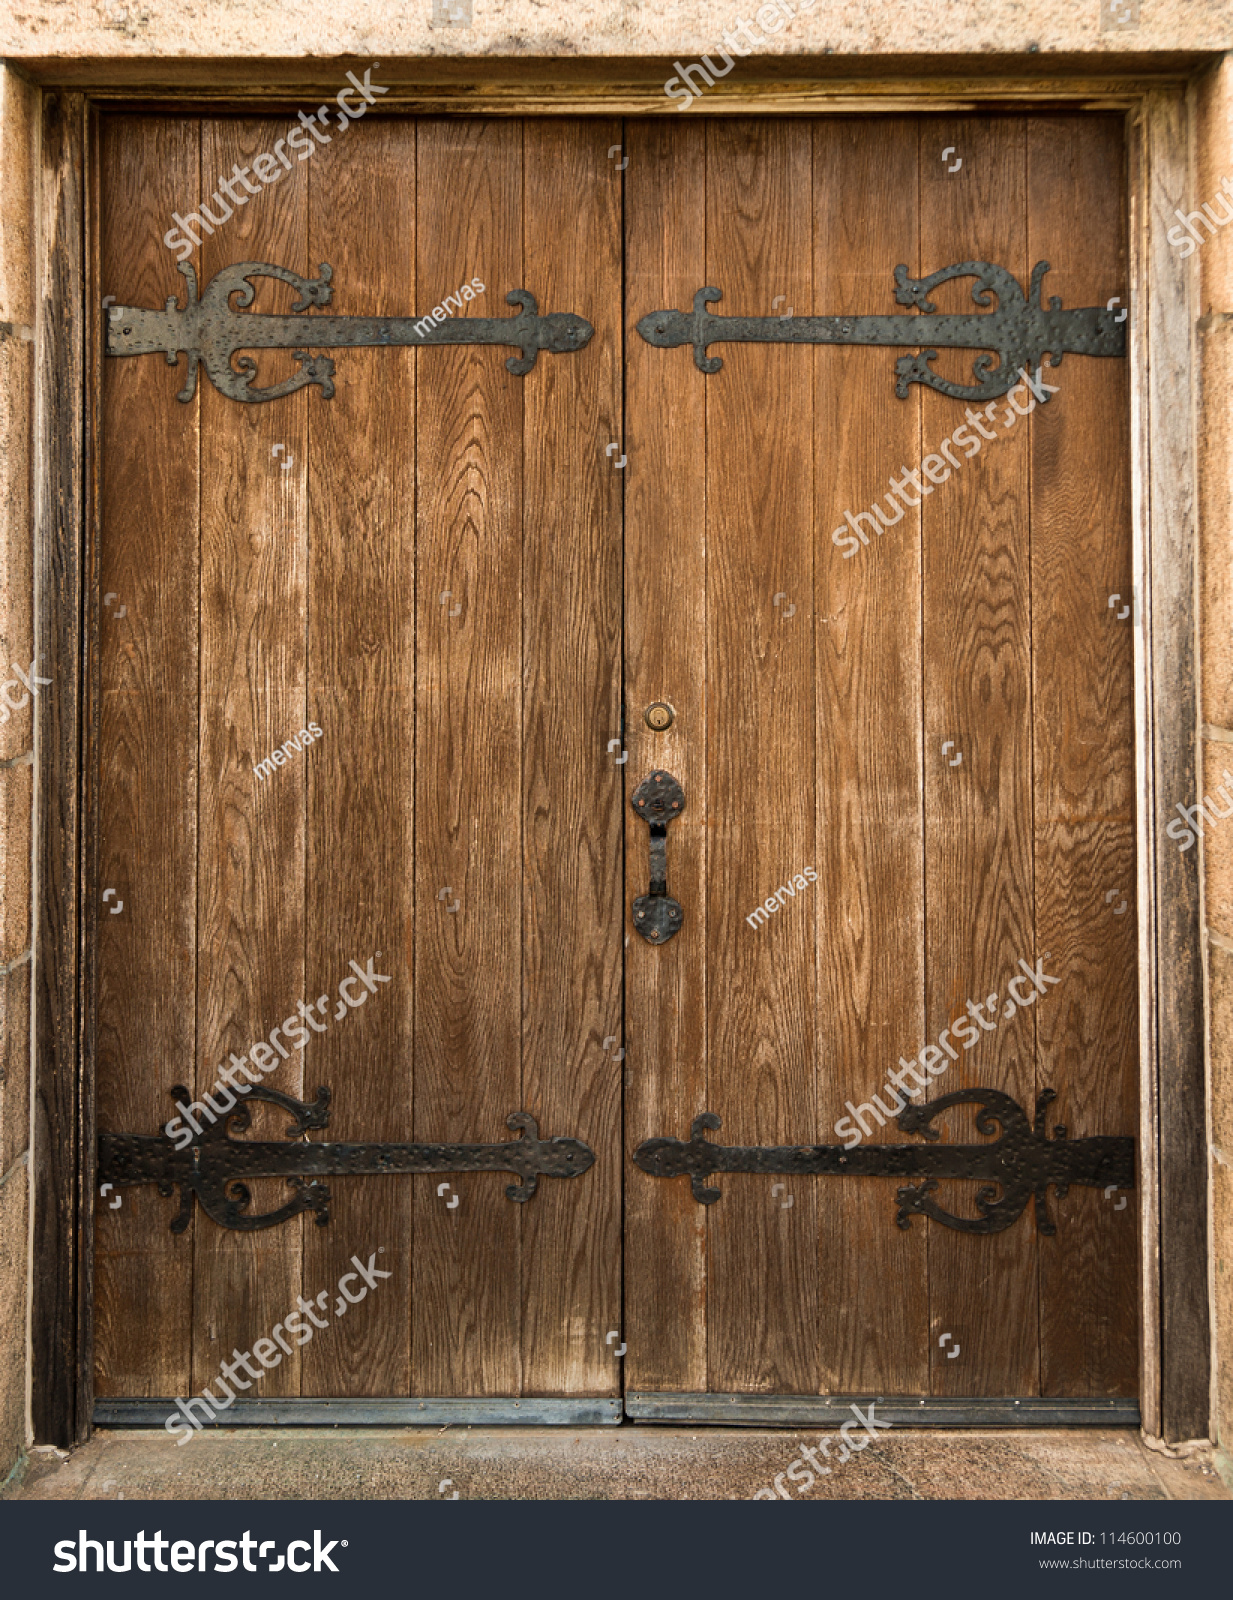 Antique Door Stock Photo 114600100 Shutterstock